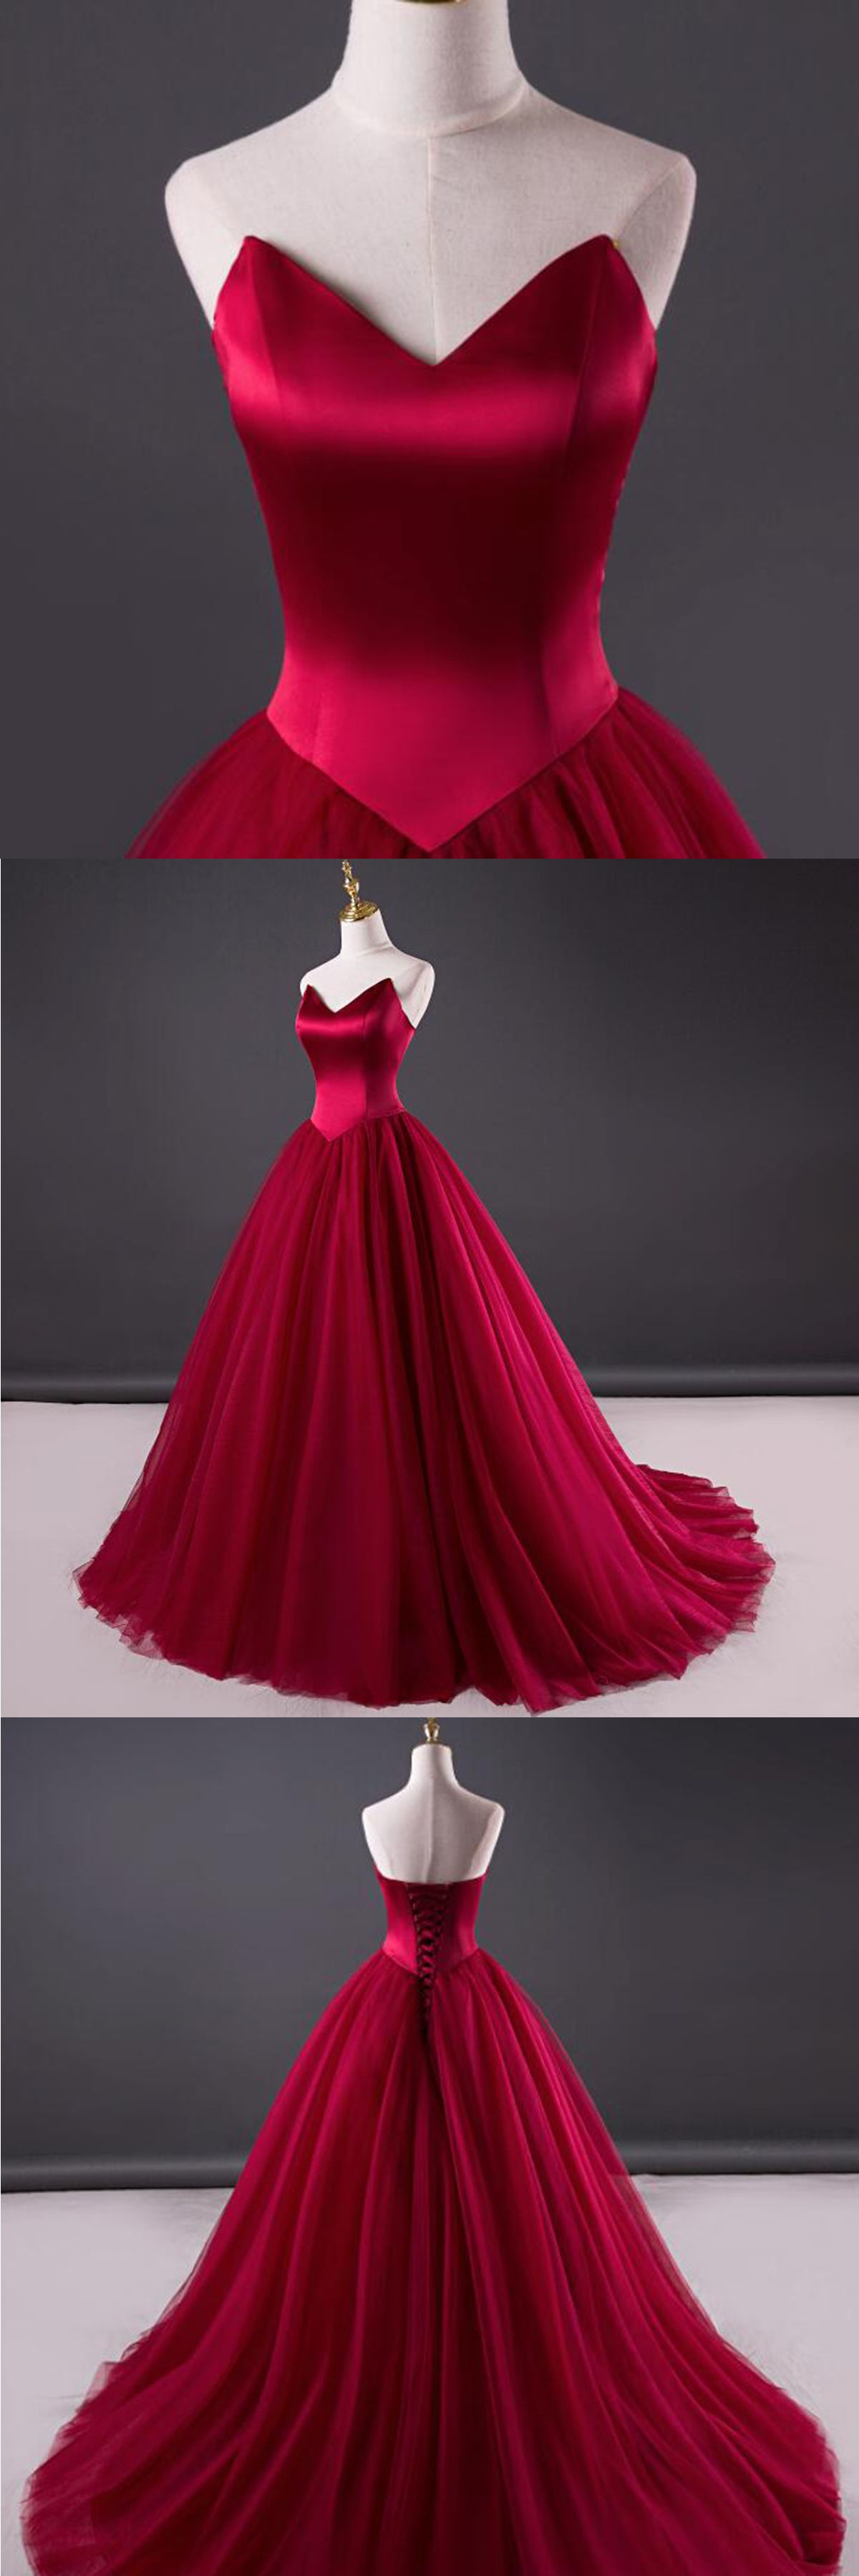 Burgundy tulle strapless sweetheart neckline long evening dress